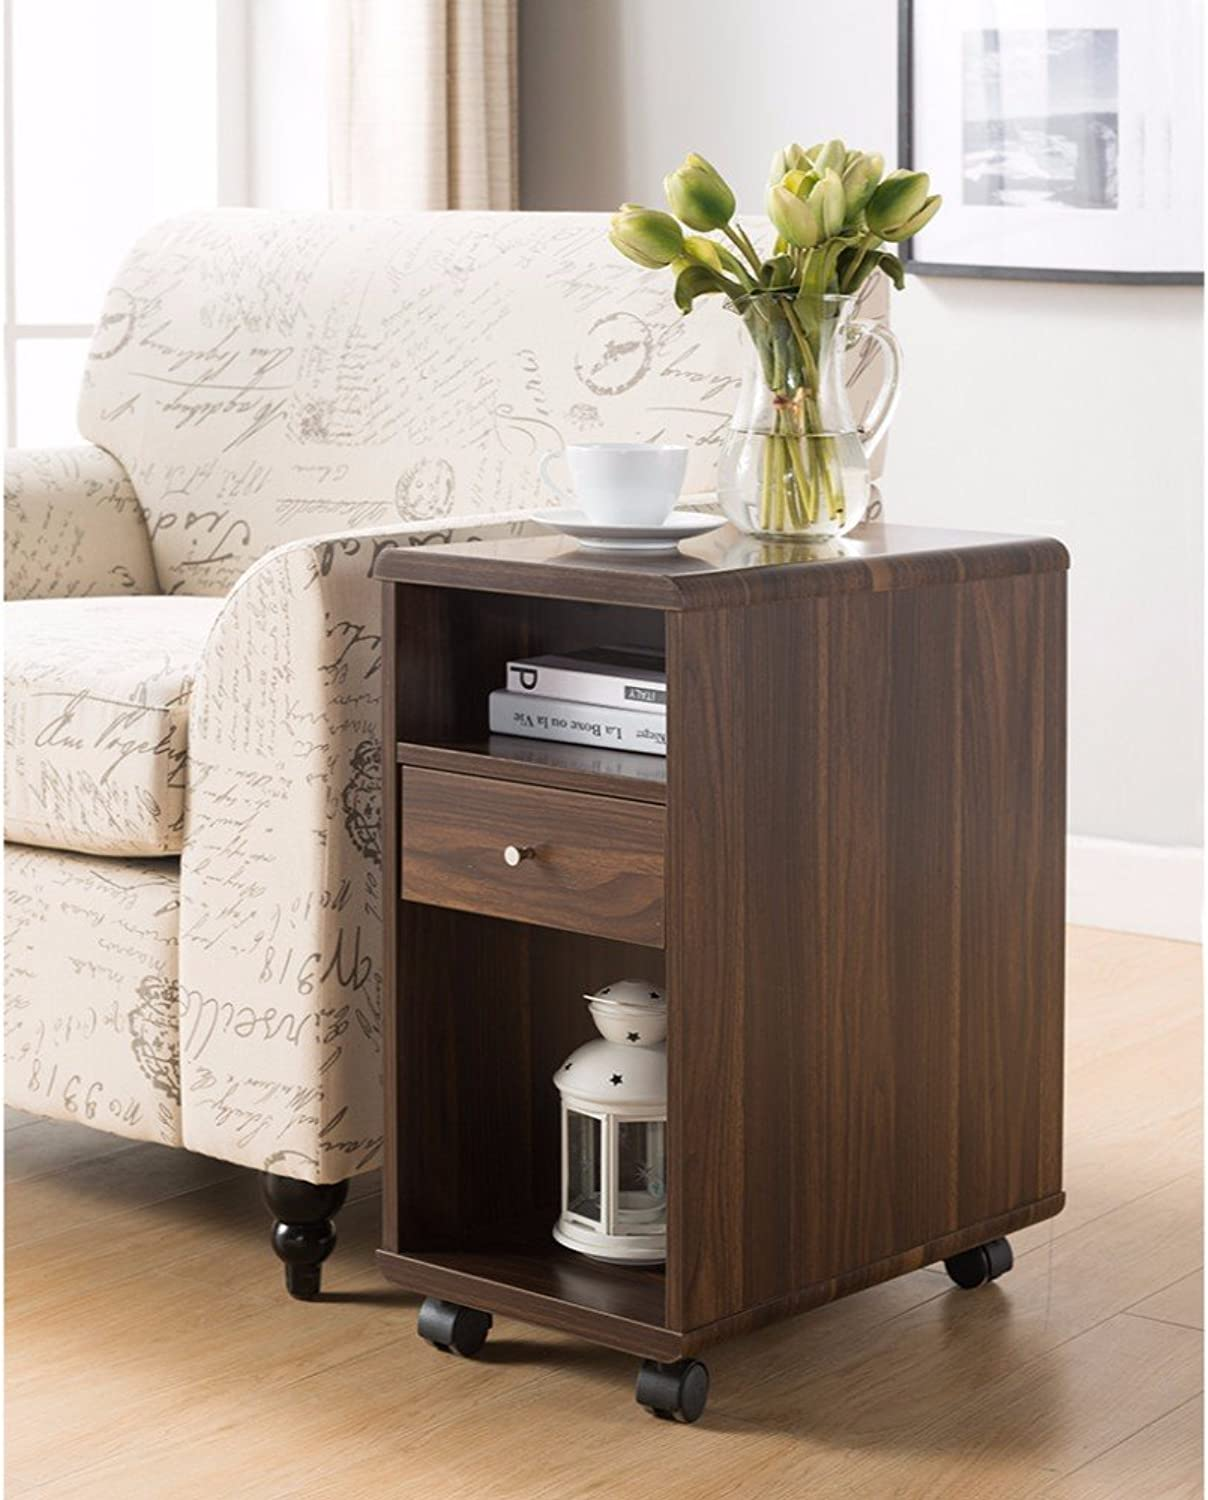 Benzara BM148900 Wooden Chairside Table with Castors, One Size, Brown